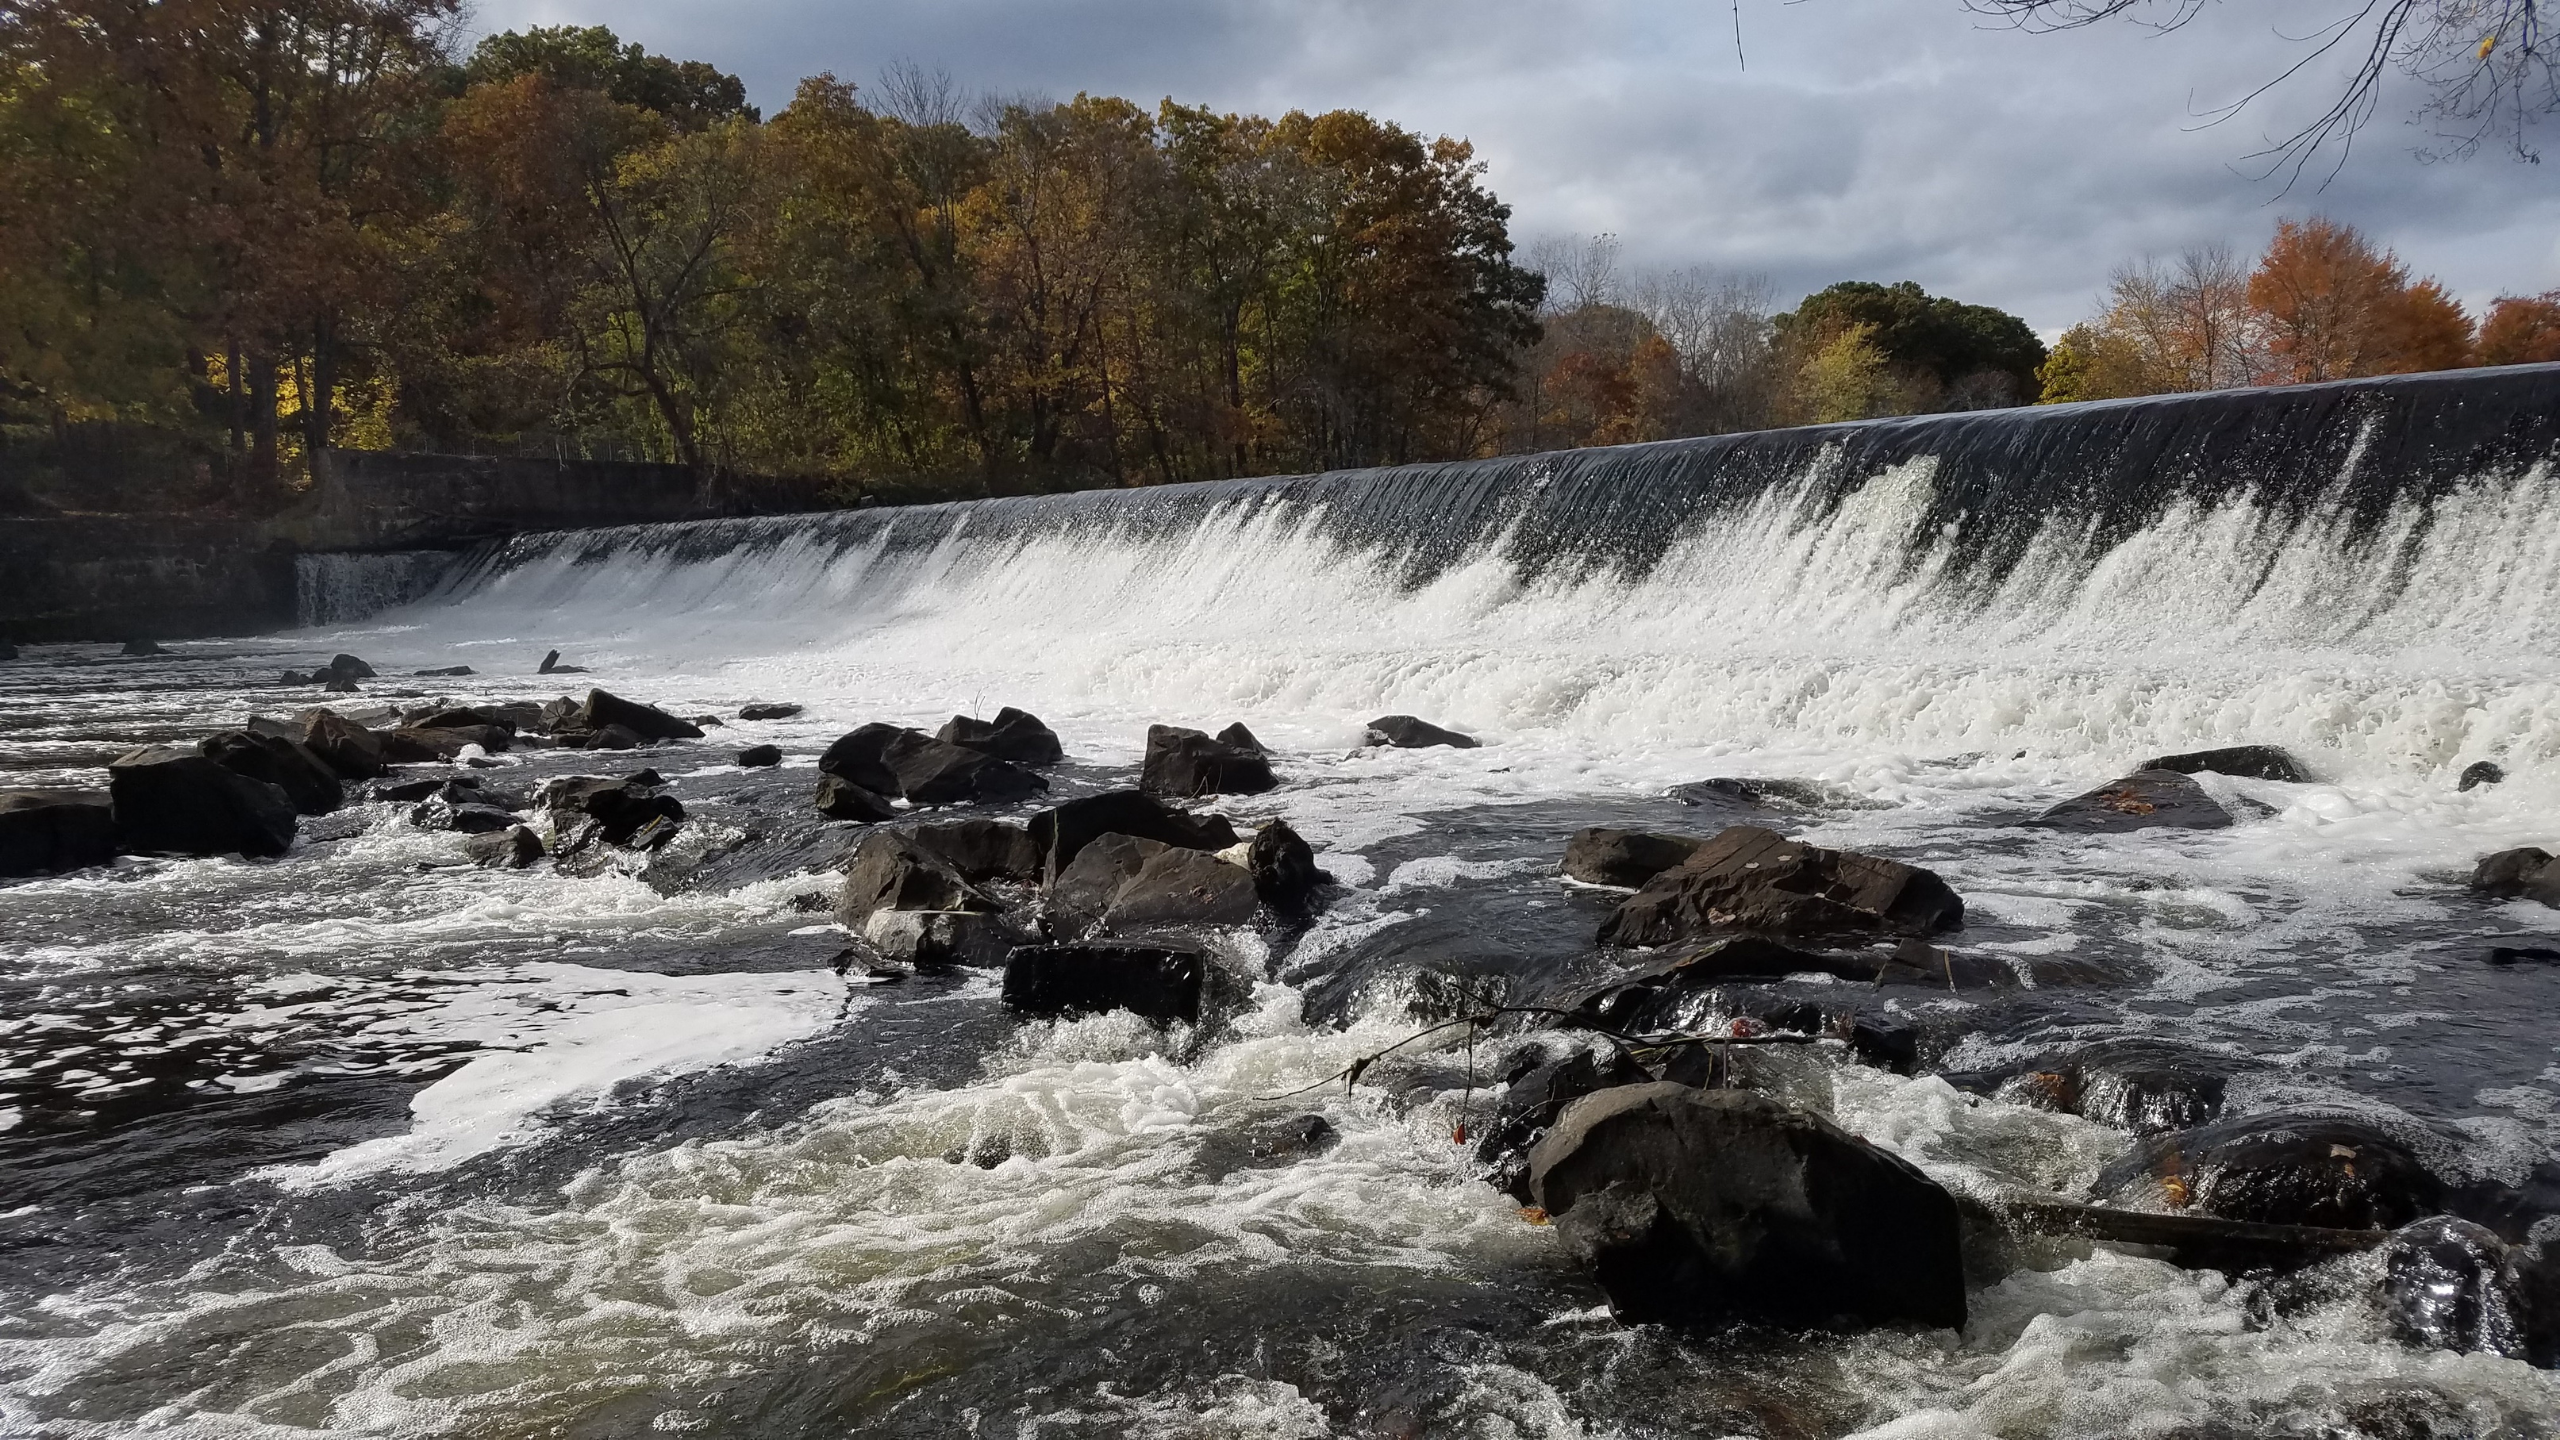 Albion Dam in Lincoln, RI. Photo by Bonnie Combs.